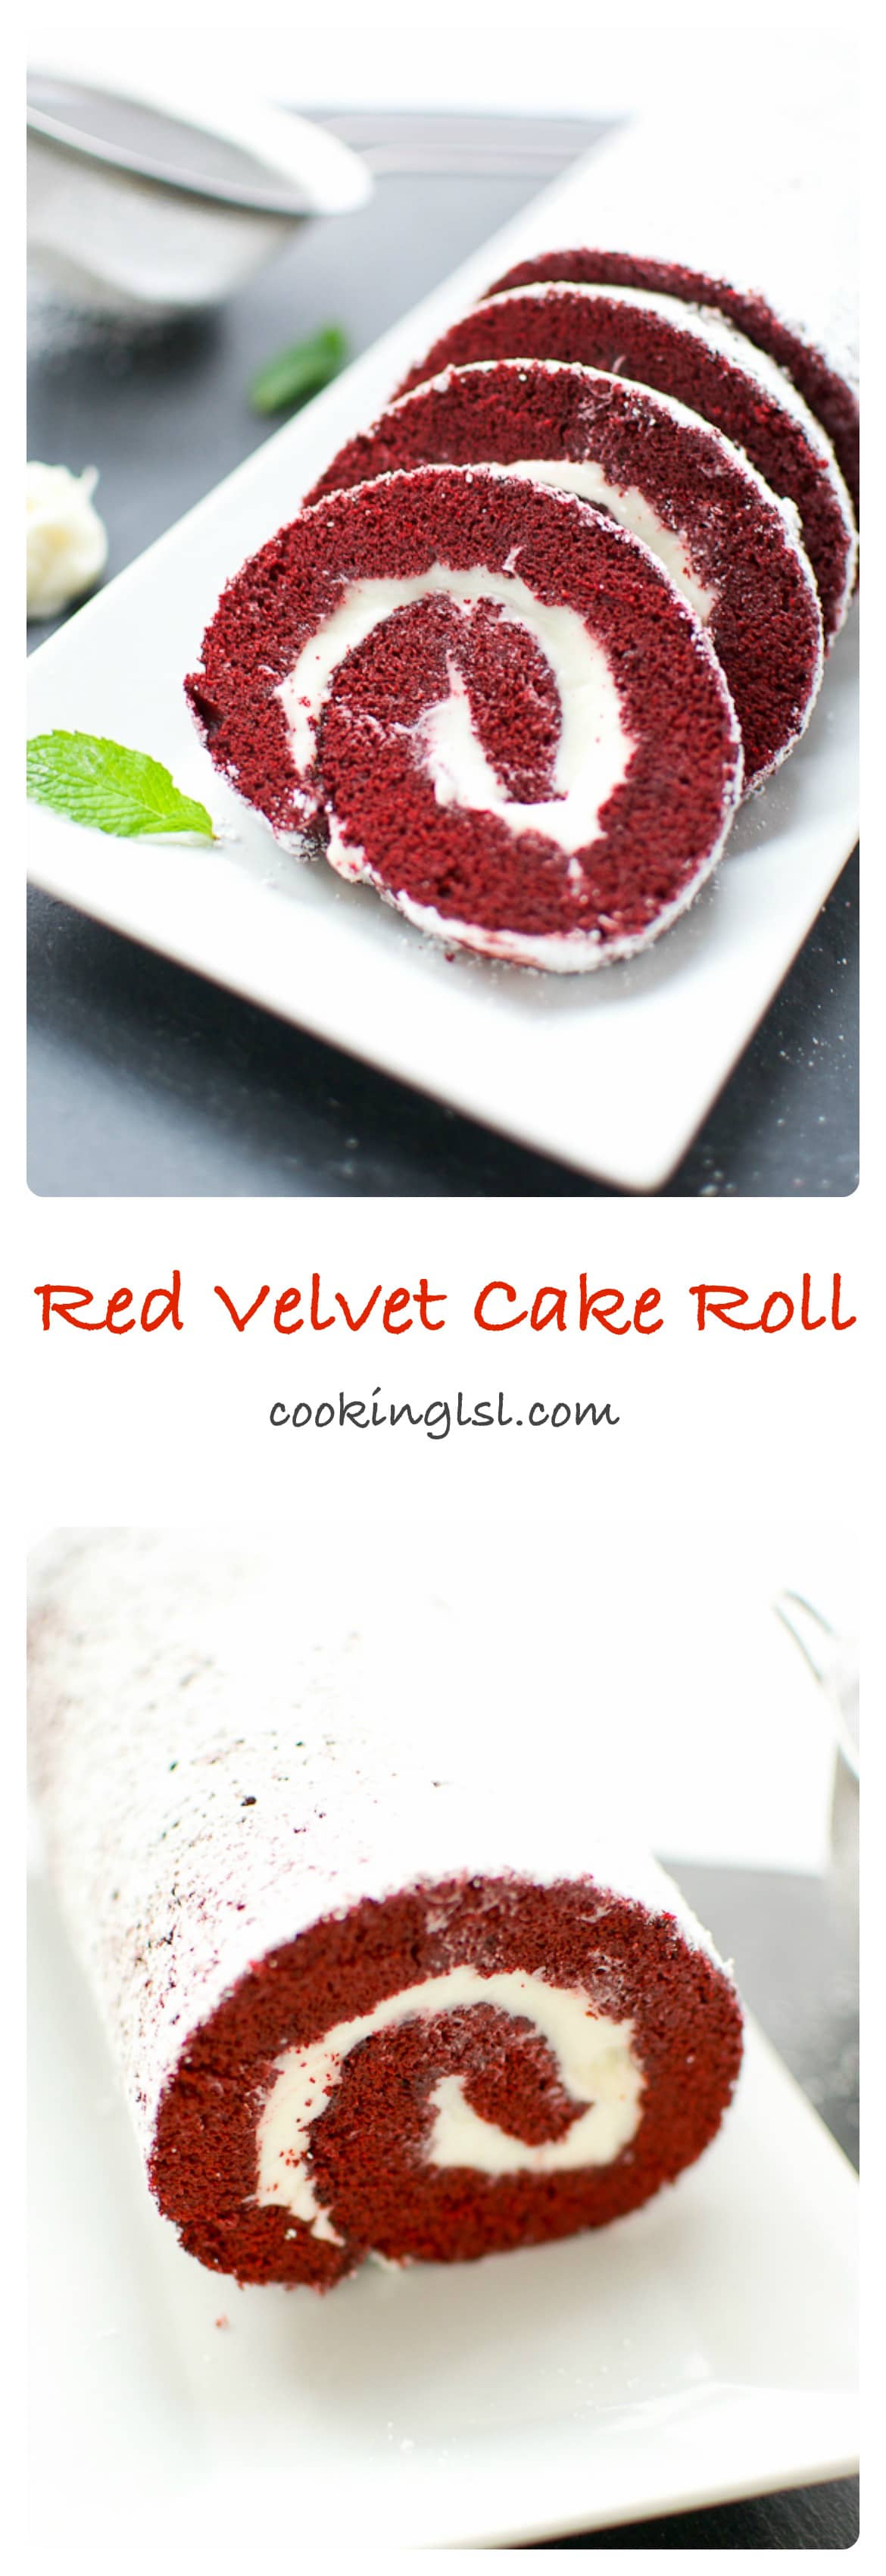 red-velvet-cake-roll-valentines-day-holiday